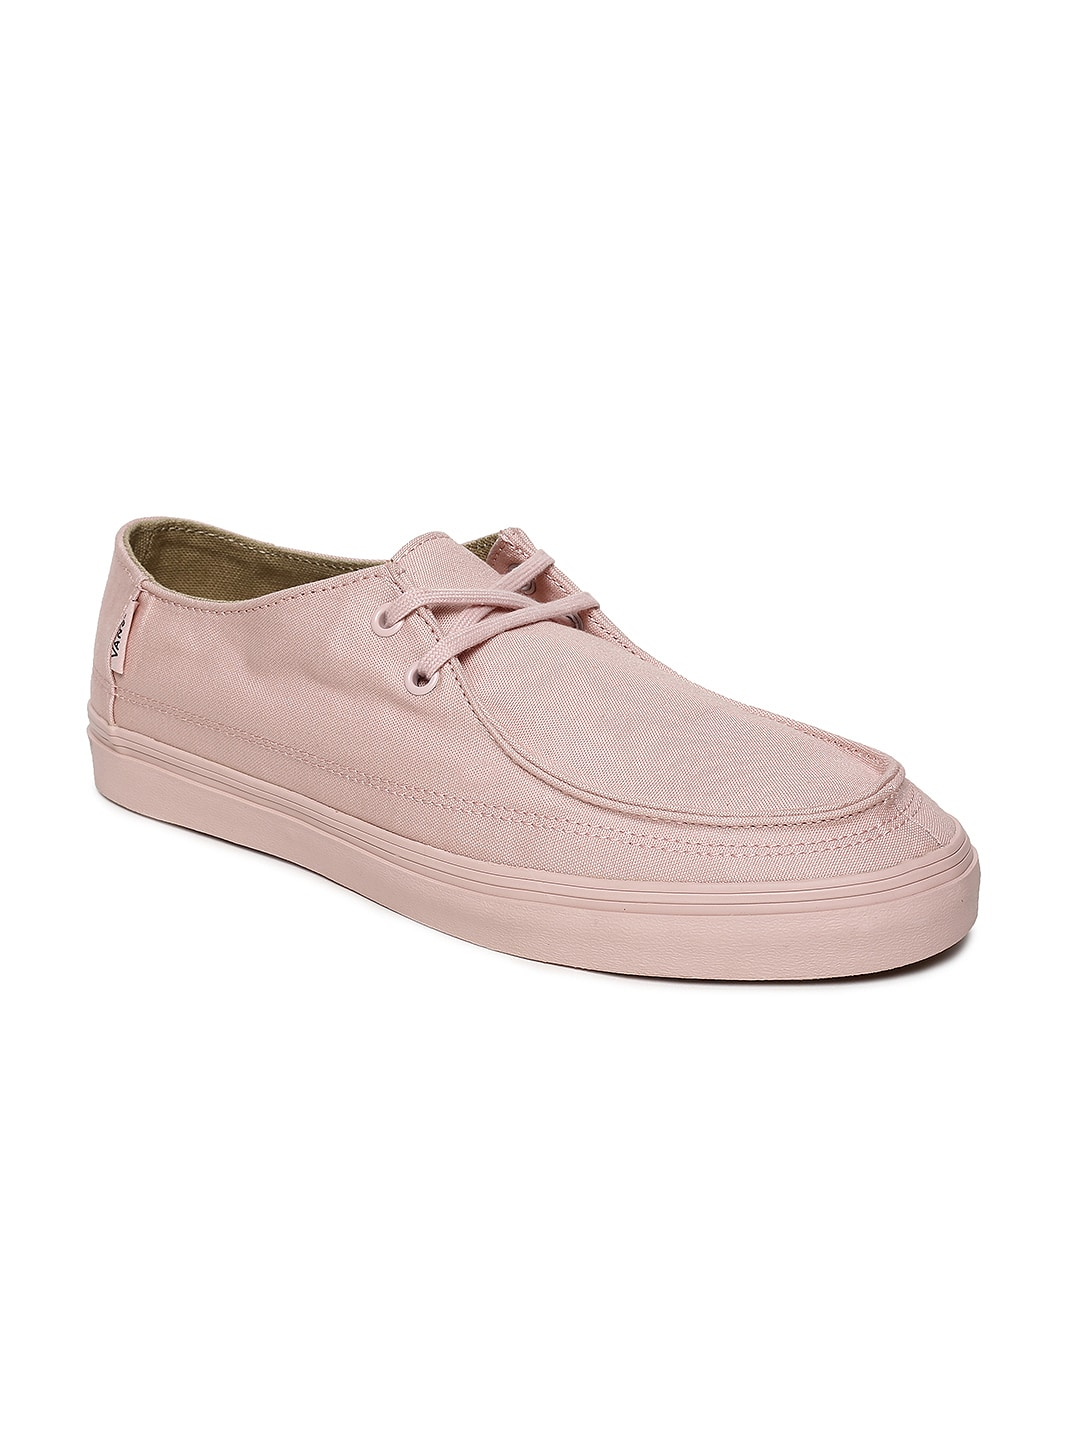 Vans Shoes for Women - Buy Vans Shoes for Girls Online - Myntra d77db4c35